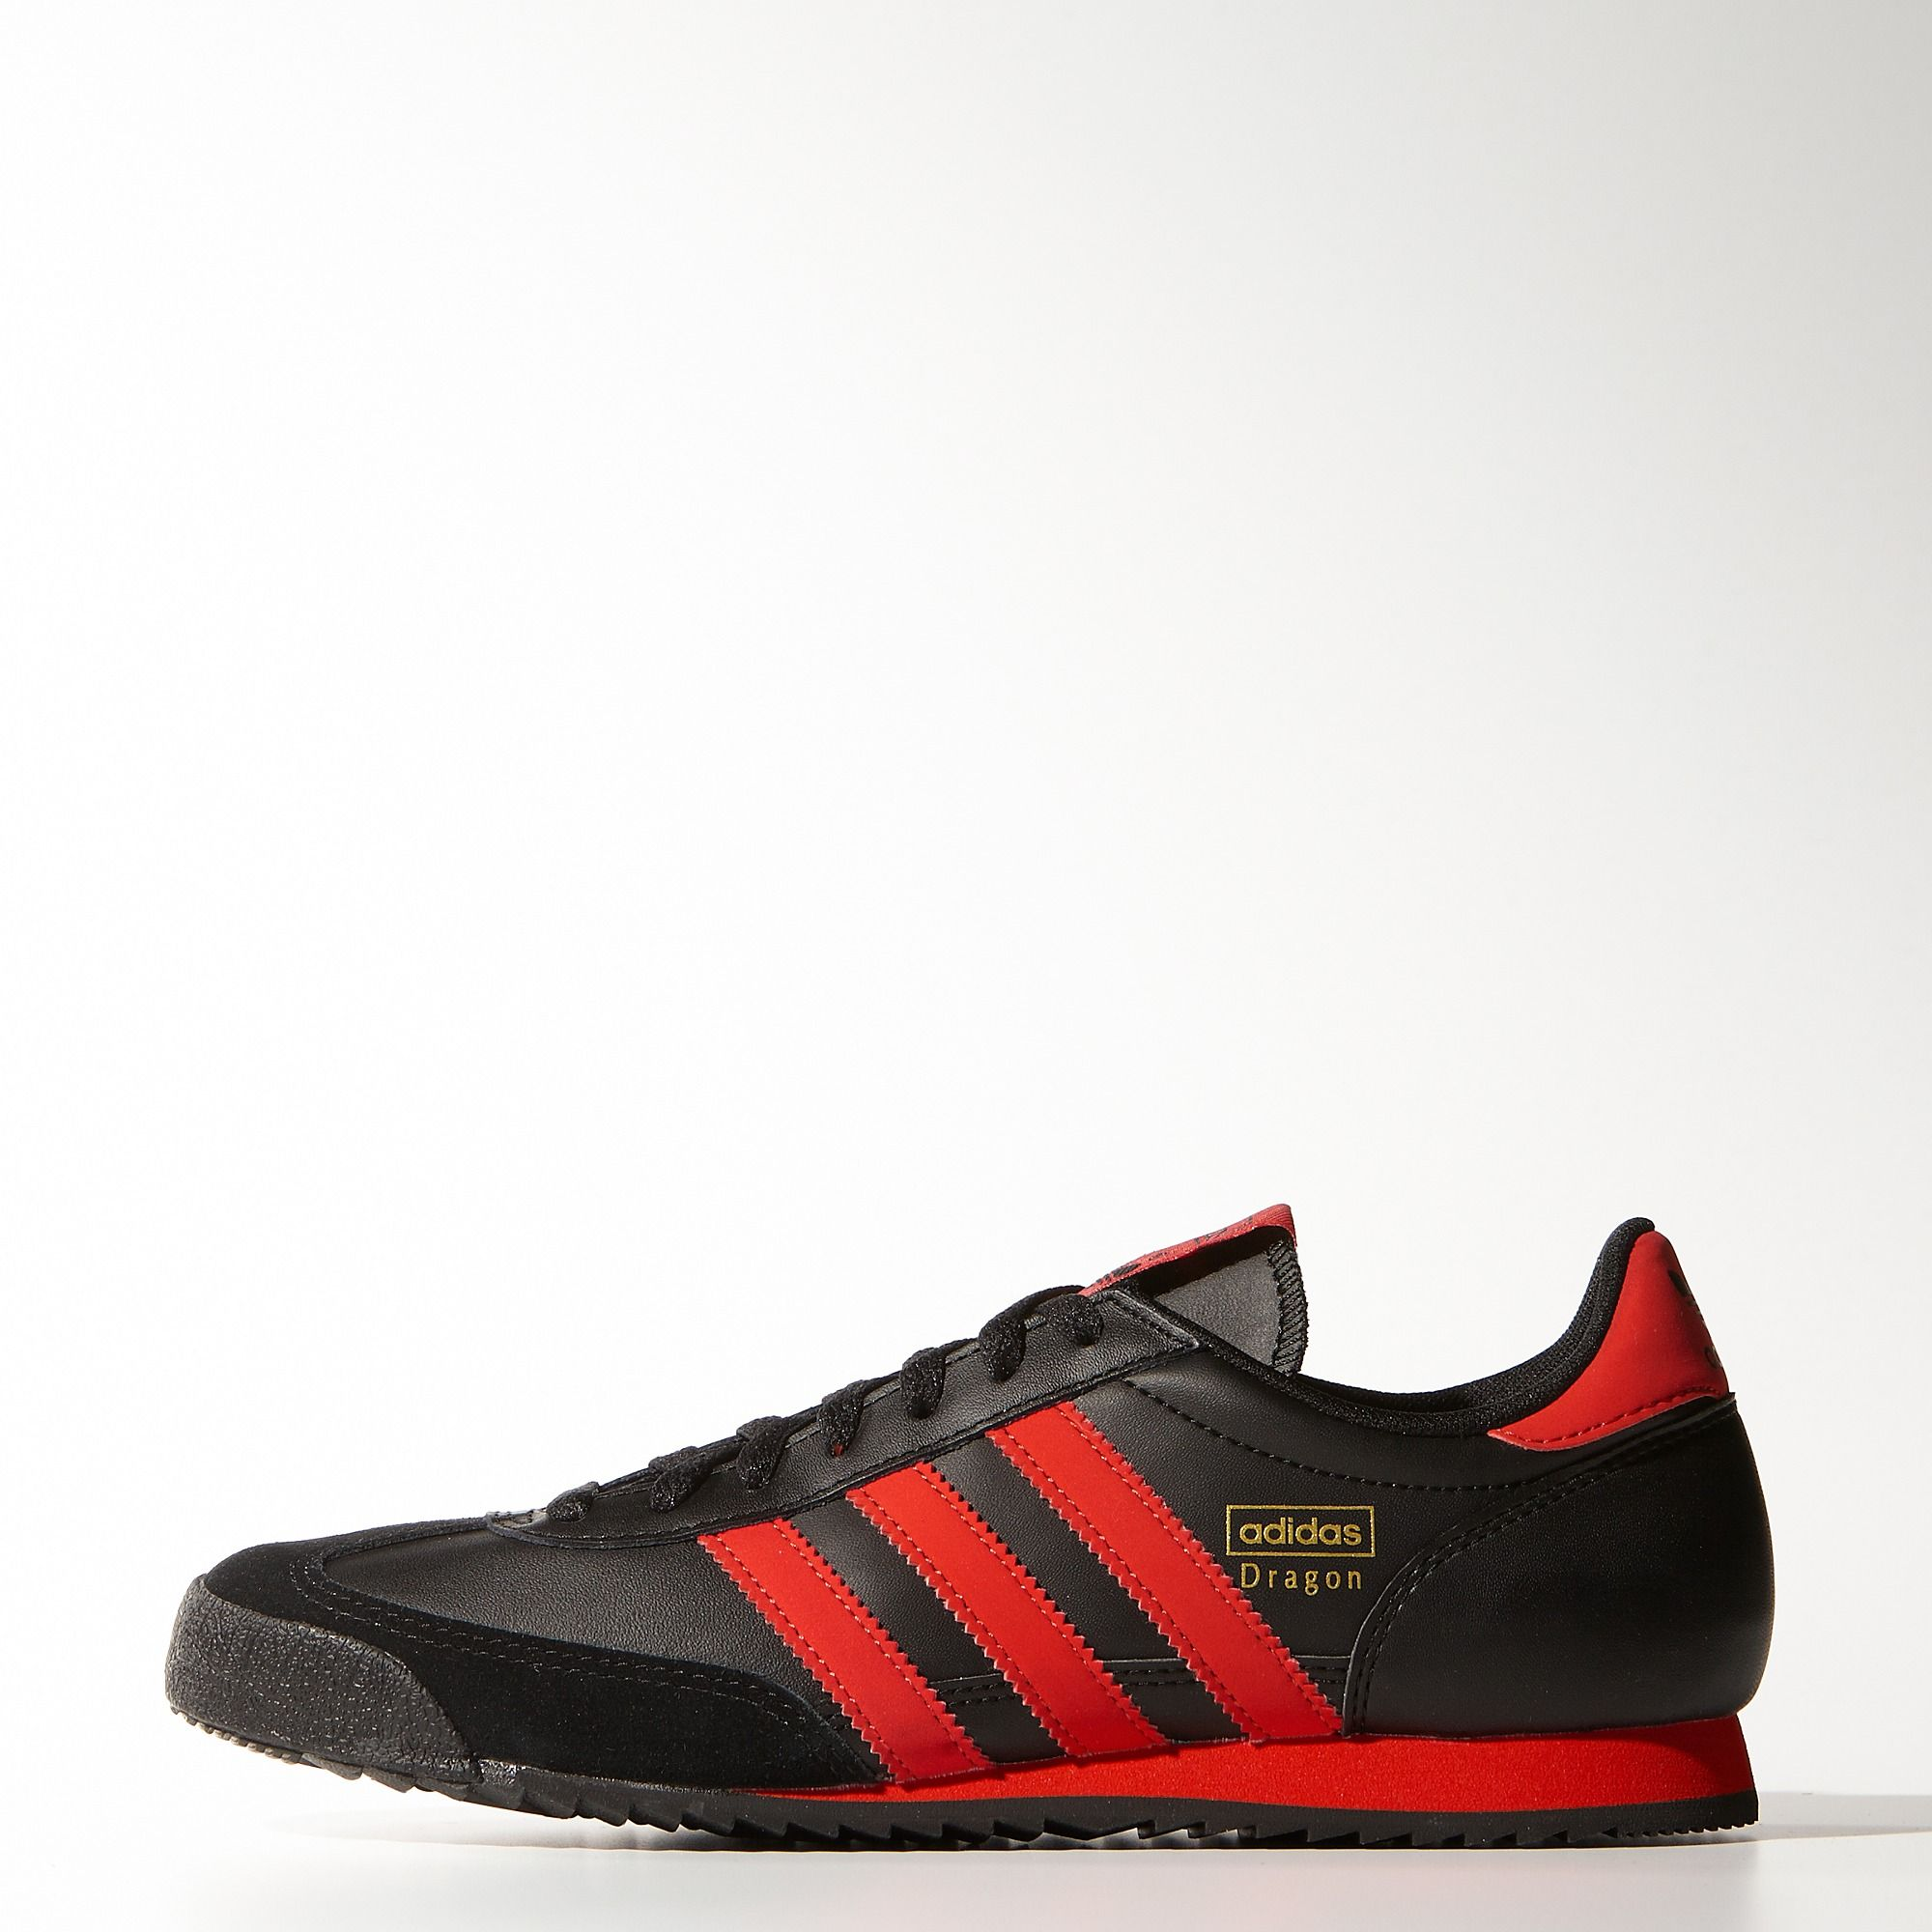 adidas Dragon Chaussures adidas US Chaussures Pinterest Adidas